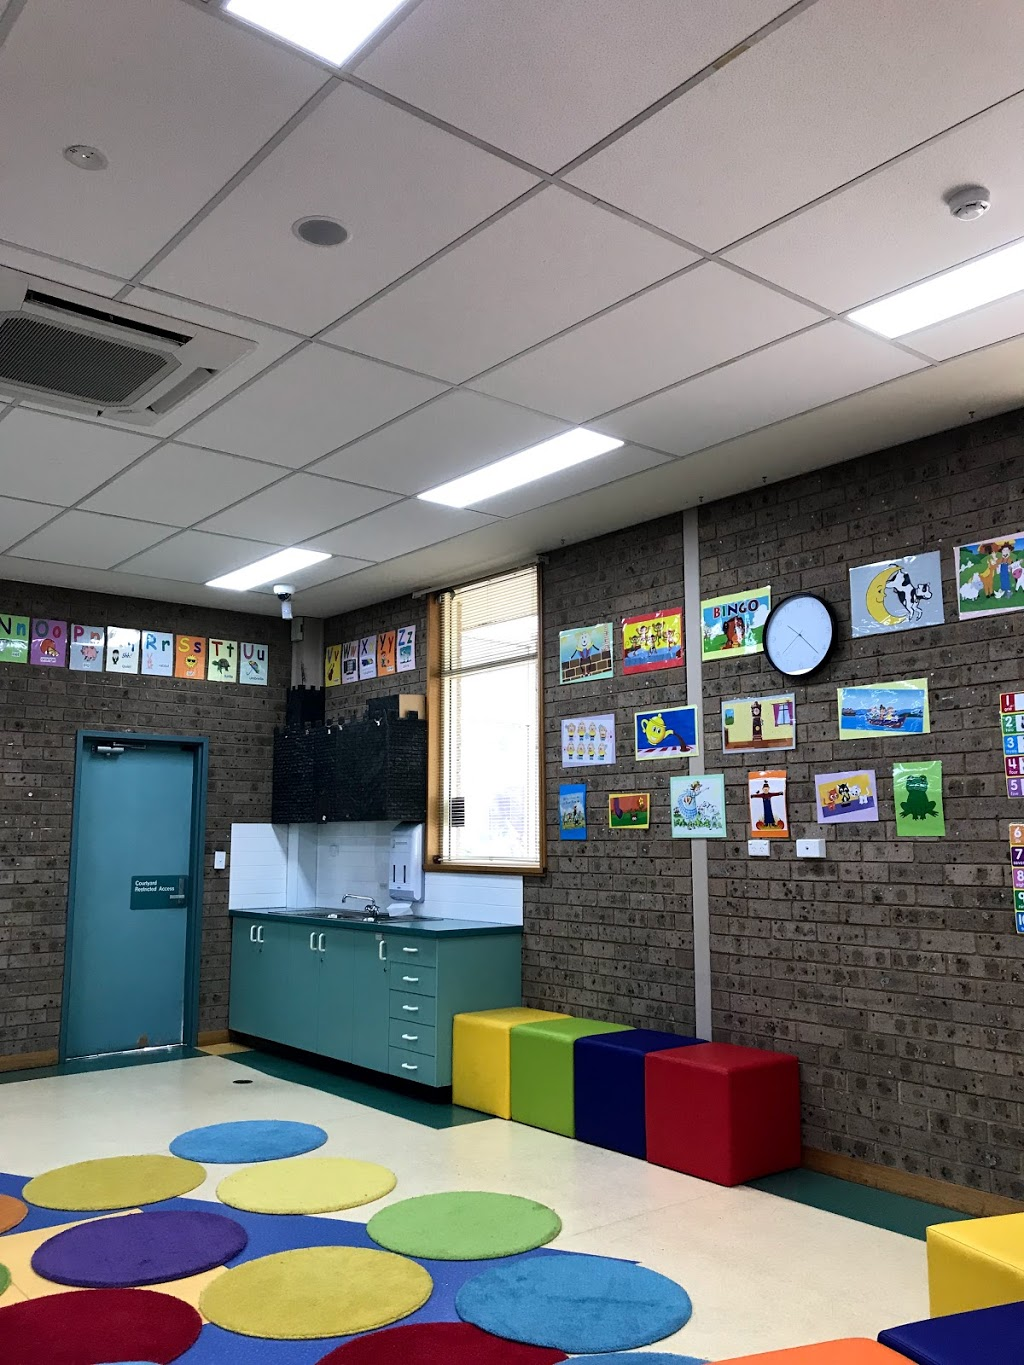 HJ Daley Library | library | 1 Hurley St, Campbelltown NSW 2560, Australia | 0246454444 OR +61 2 4645 4444